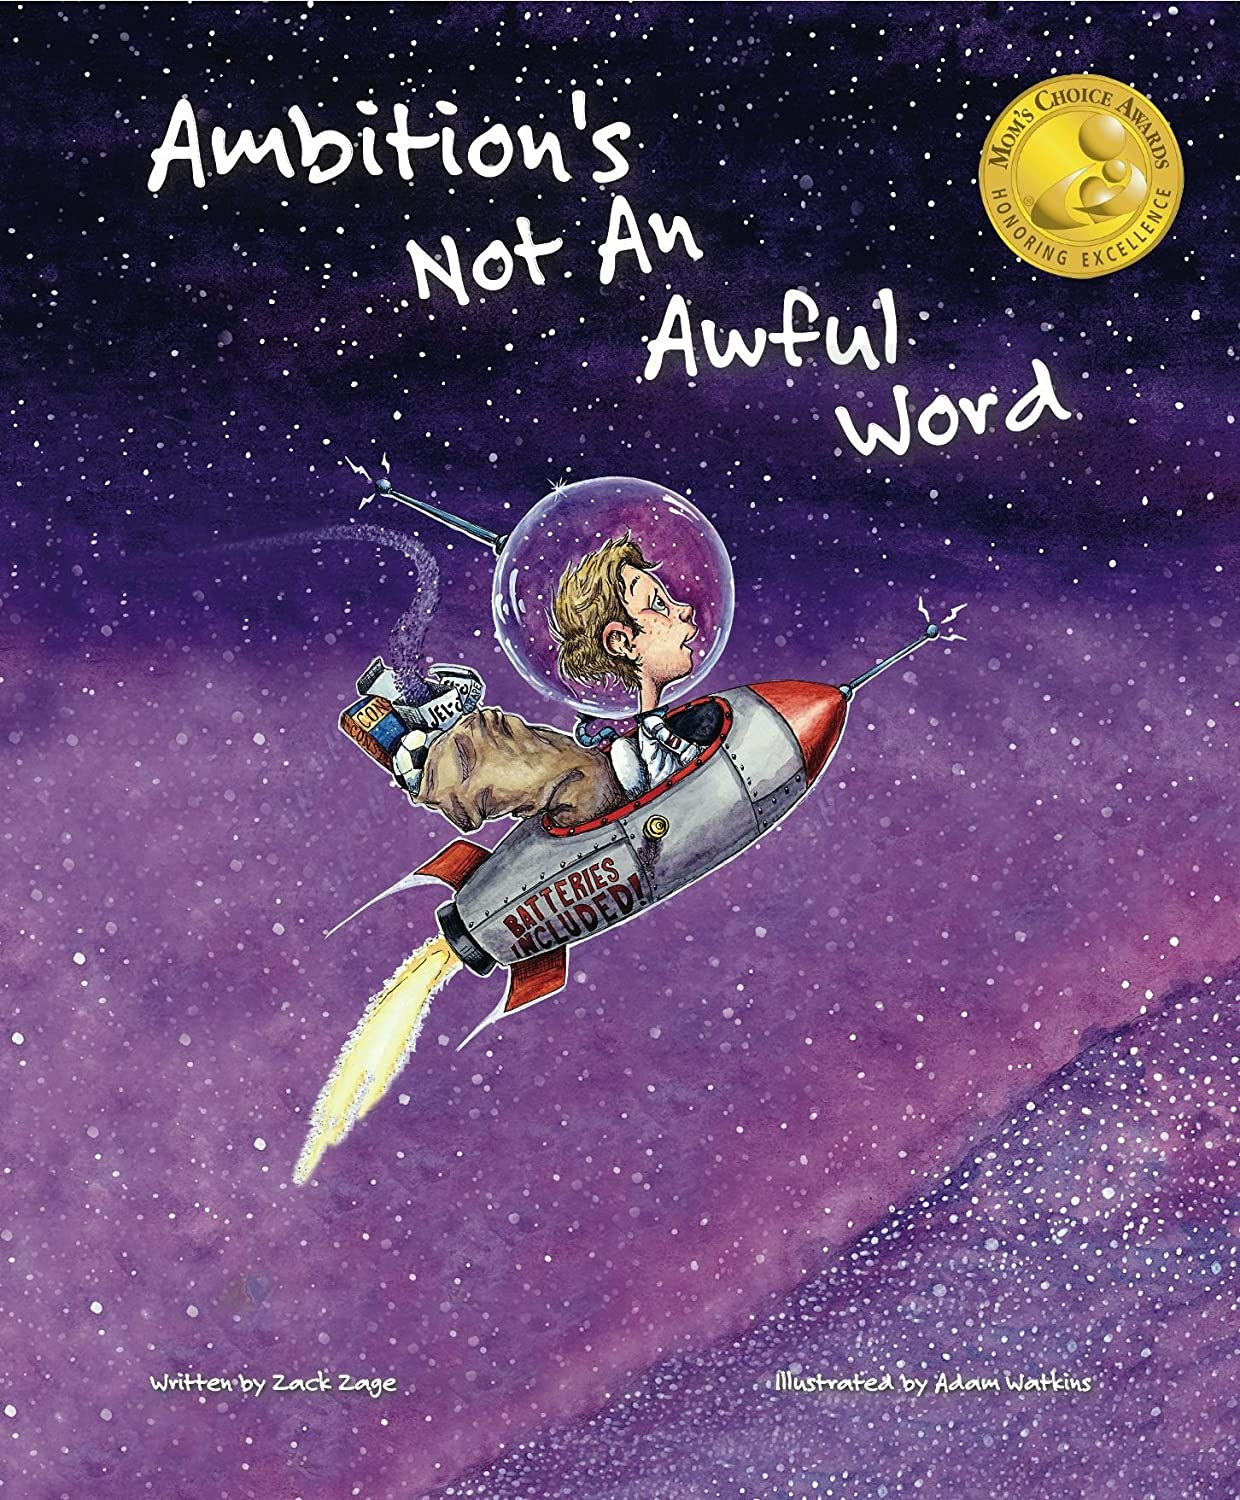 Ambitions' Not an Awful World - book review for kids  {Reading List}